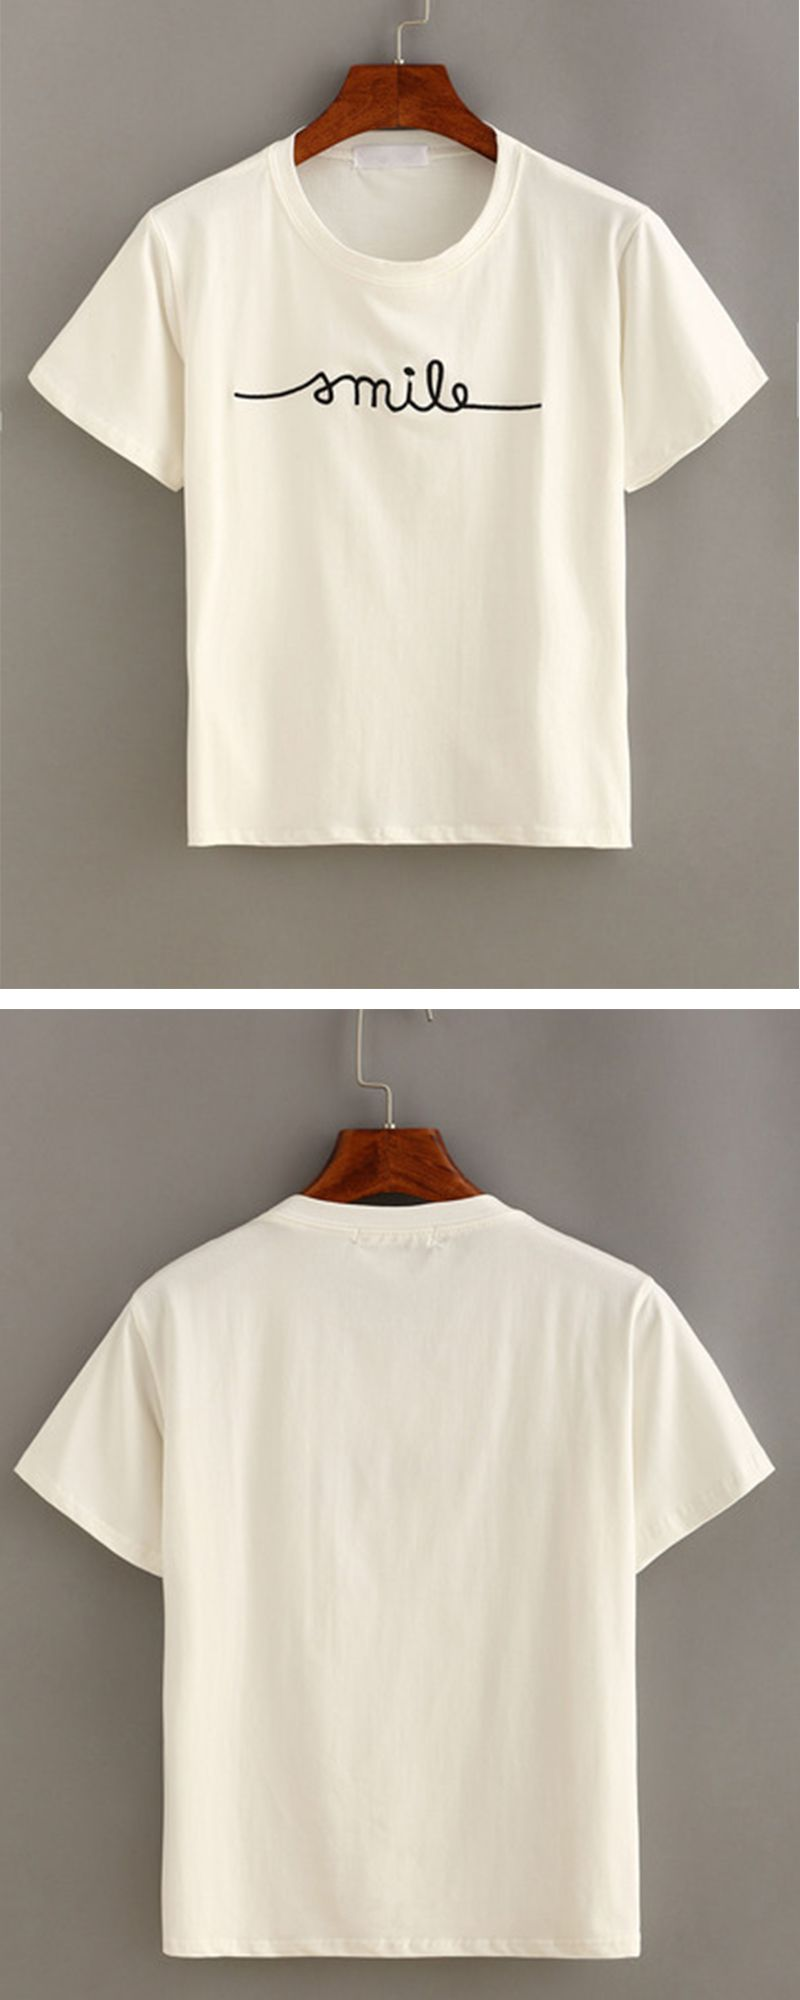 38ba929bb Letter Embroidered Short Sleeve T-shirt in 2019 | creative clothing ...